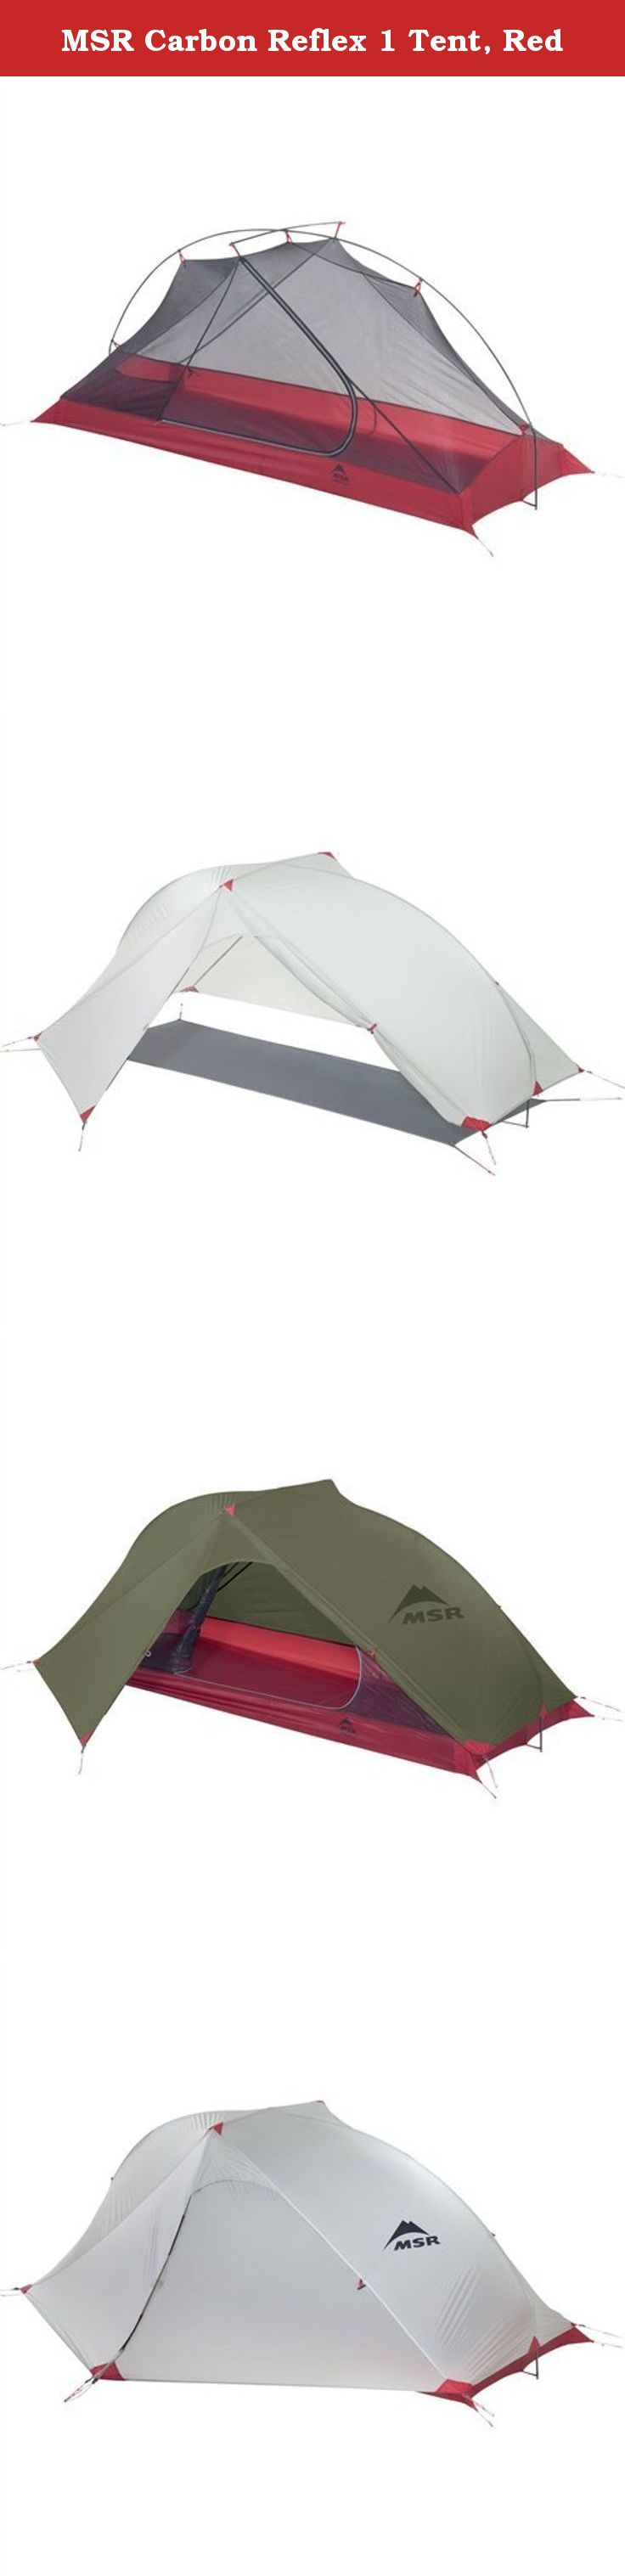 MSR Carbon Reflex 1 Tent Red. The MSR carbon Reflex 1 tent is a lightweight non-freestanding backpacking tent that crosses the barrier from ultralight to ...  sc 1 st  Pinterest & MSR Carbon Reflex 1 Tent Red. The MSR carbon Reflex 1 tent is a ...